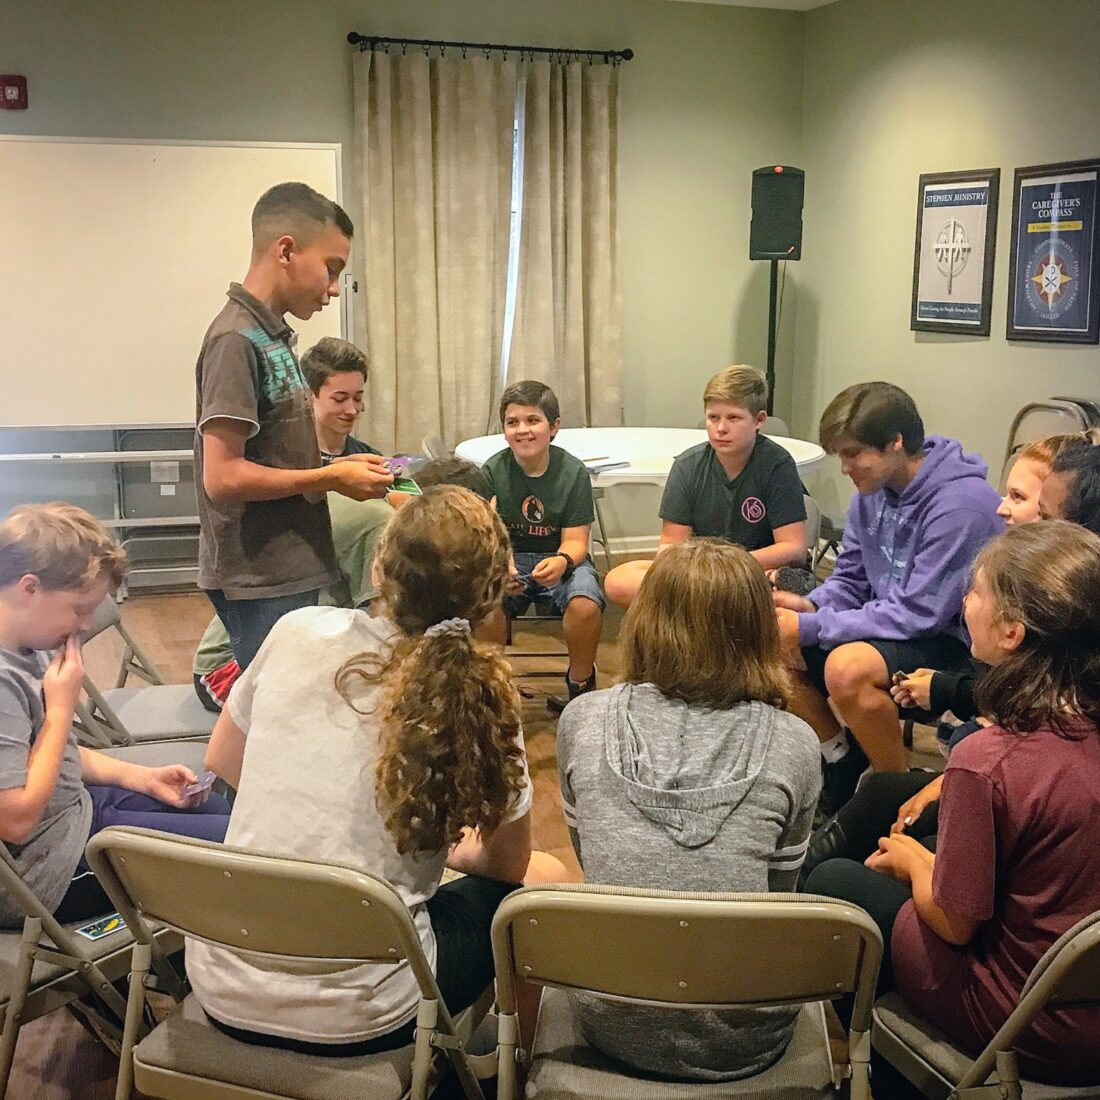 Debate students play a game to hone their improvisation skills at Learn Together Lowcountry homeschool co-op in Bluffton SC